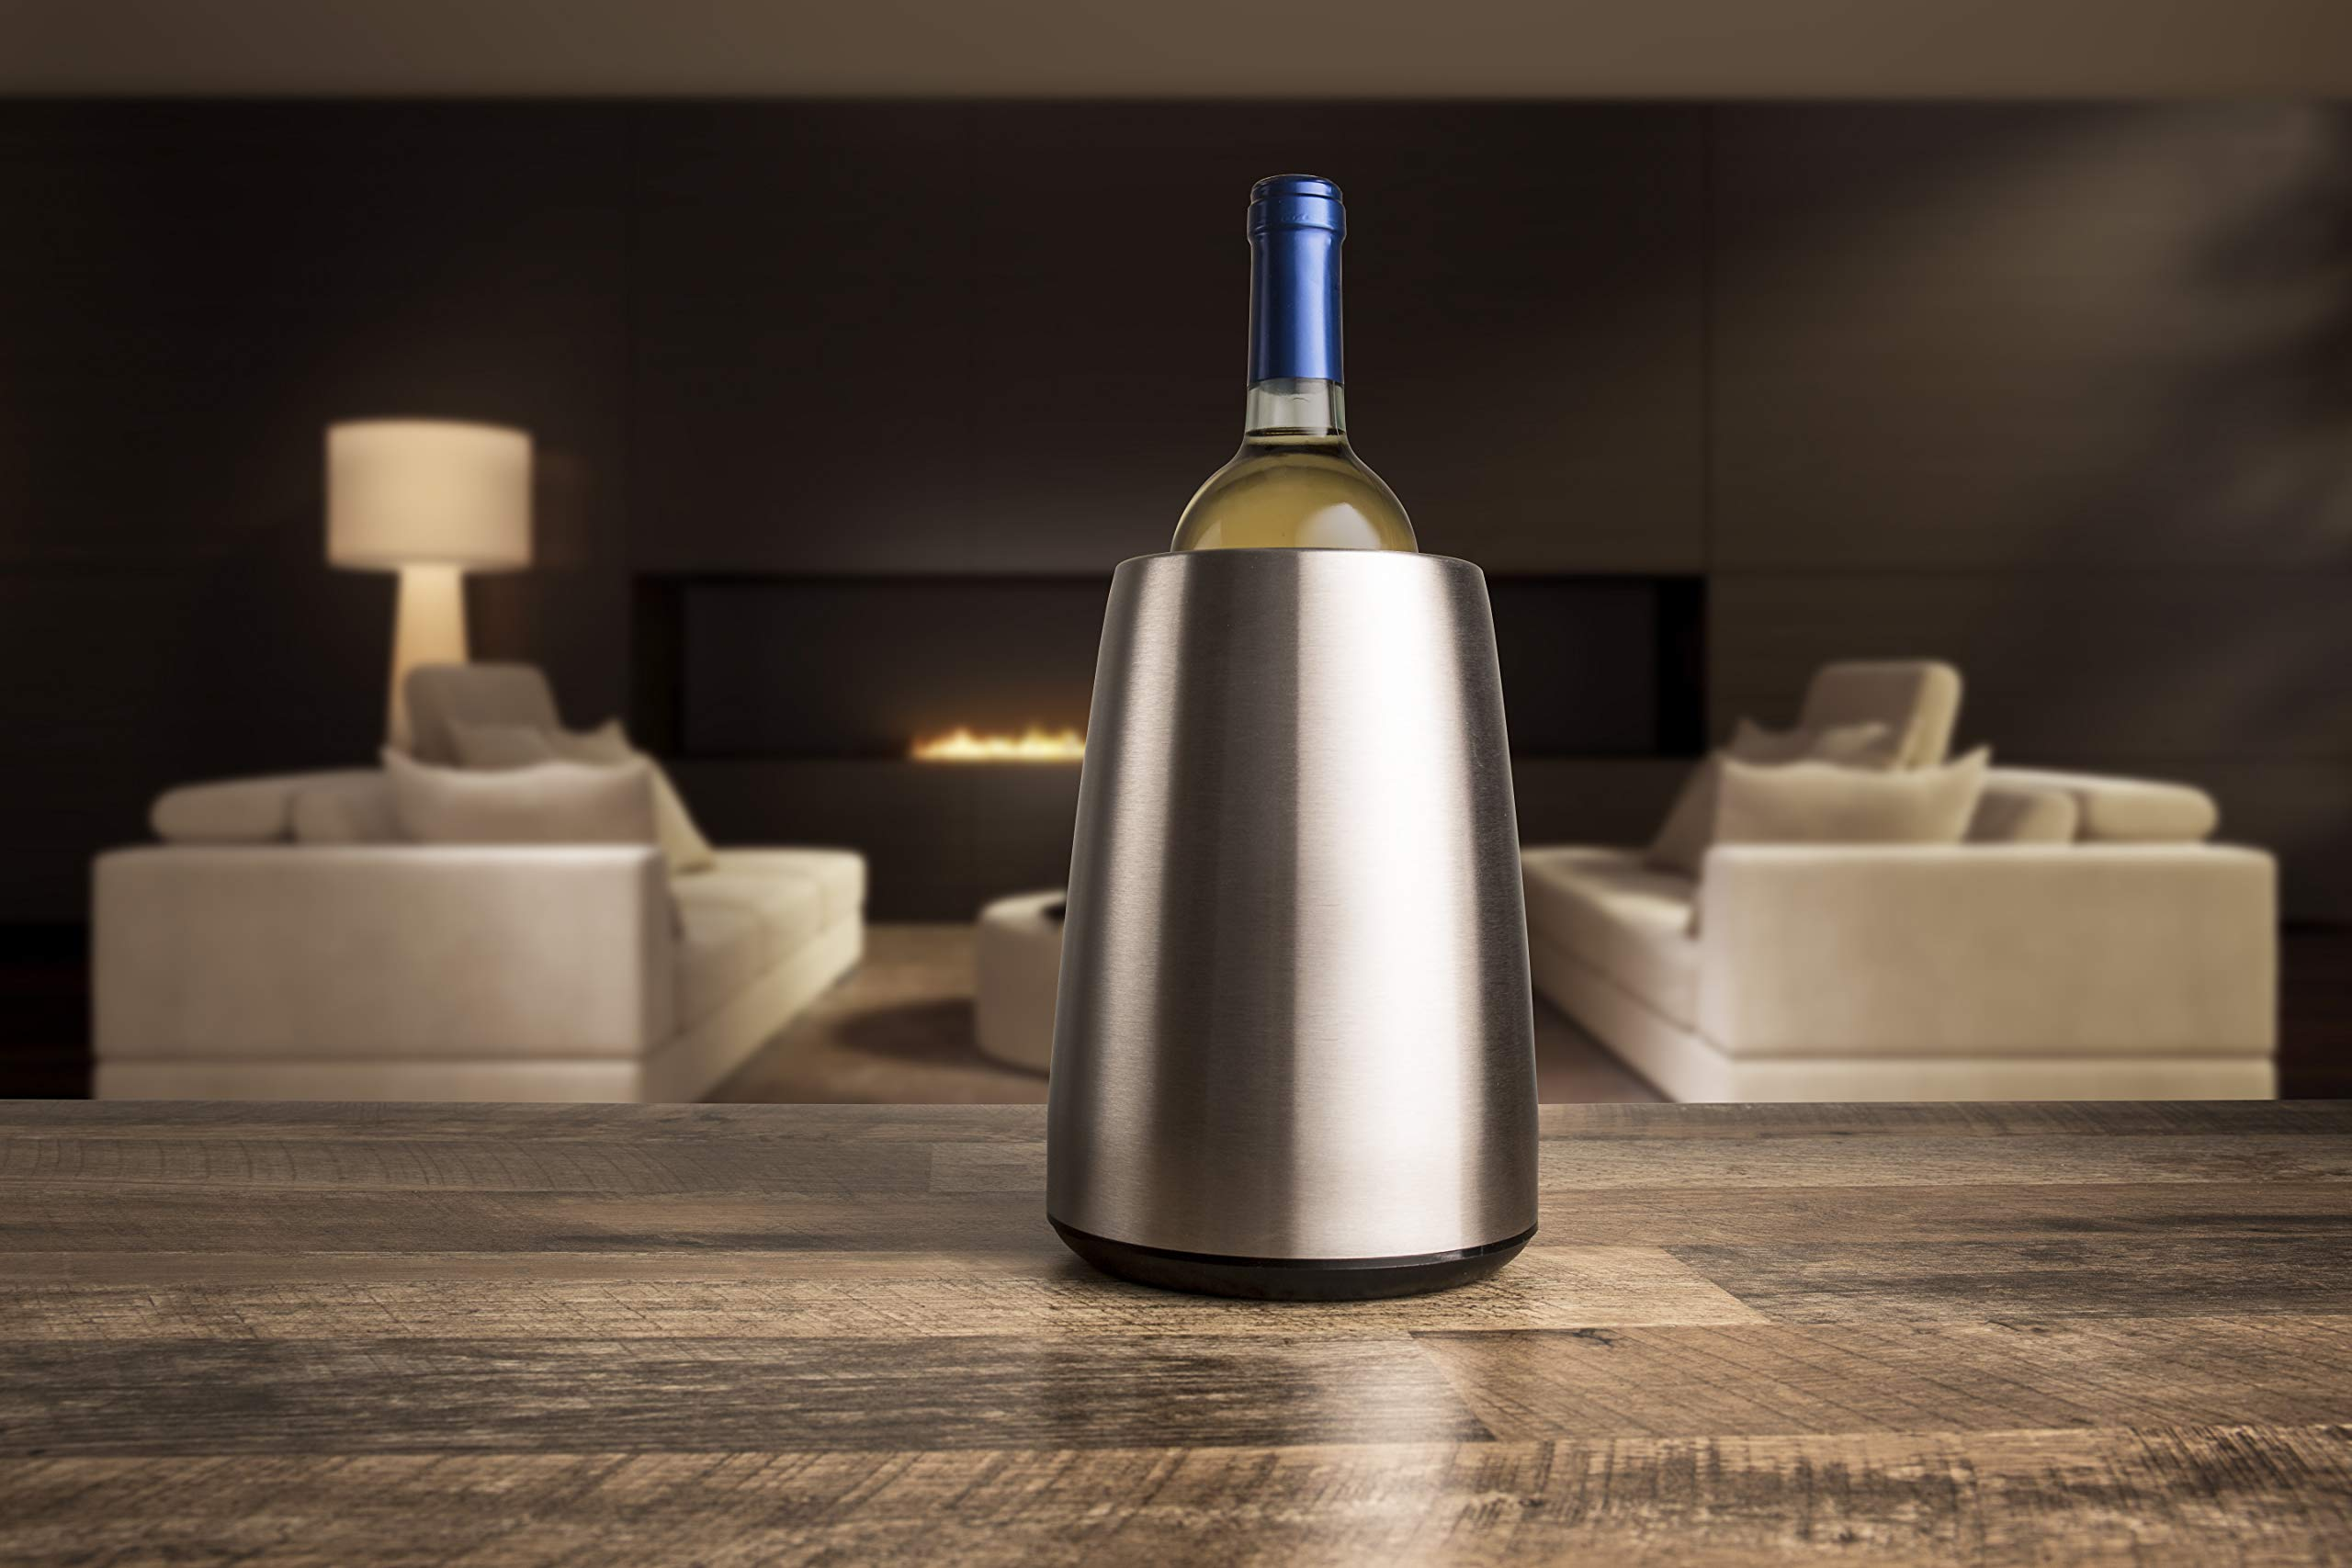 Vacu Vin Rapid Ice Elegant Wine Cooler - Stainless Steel